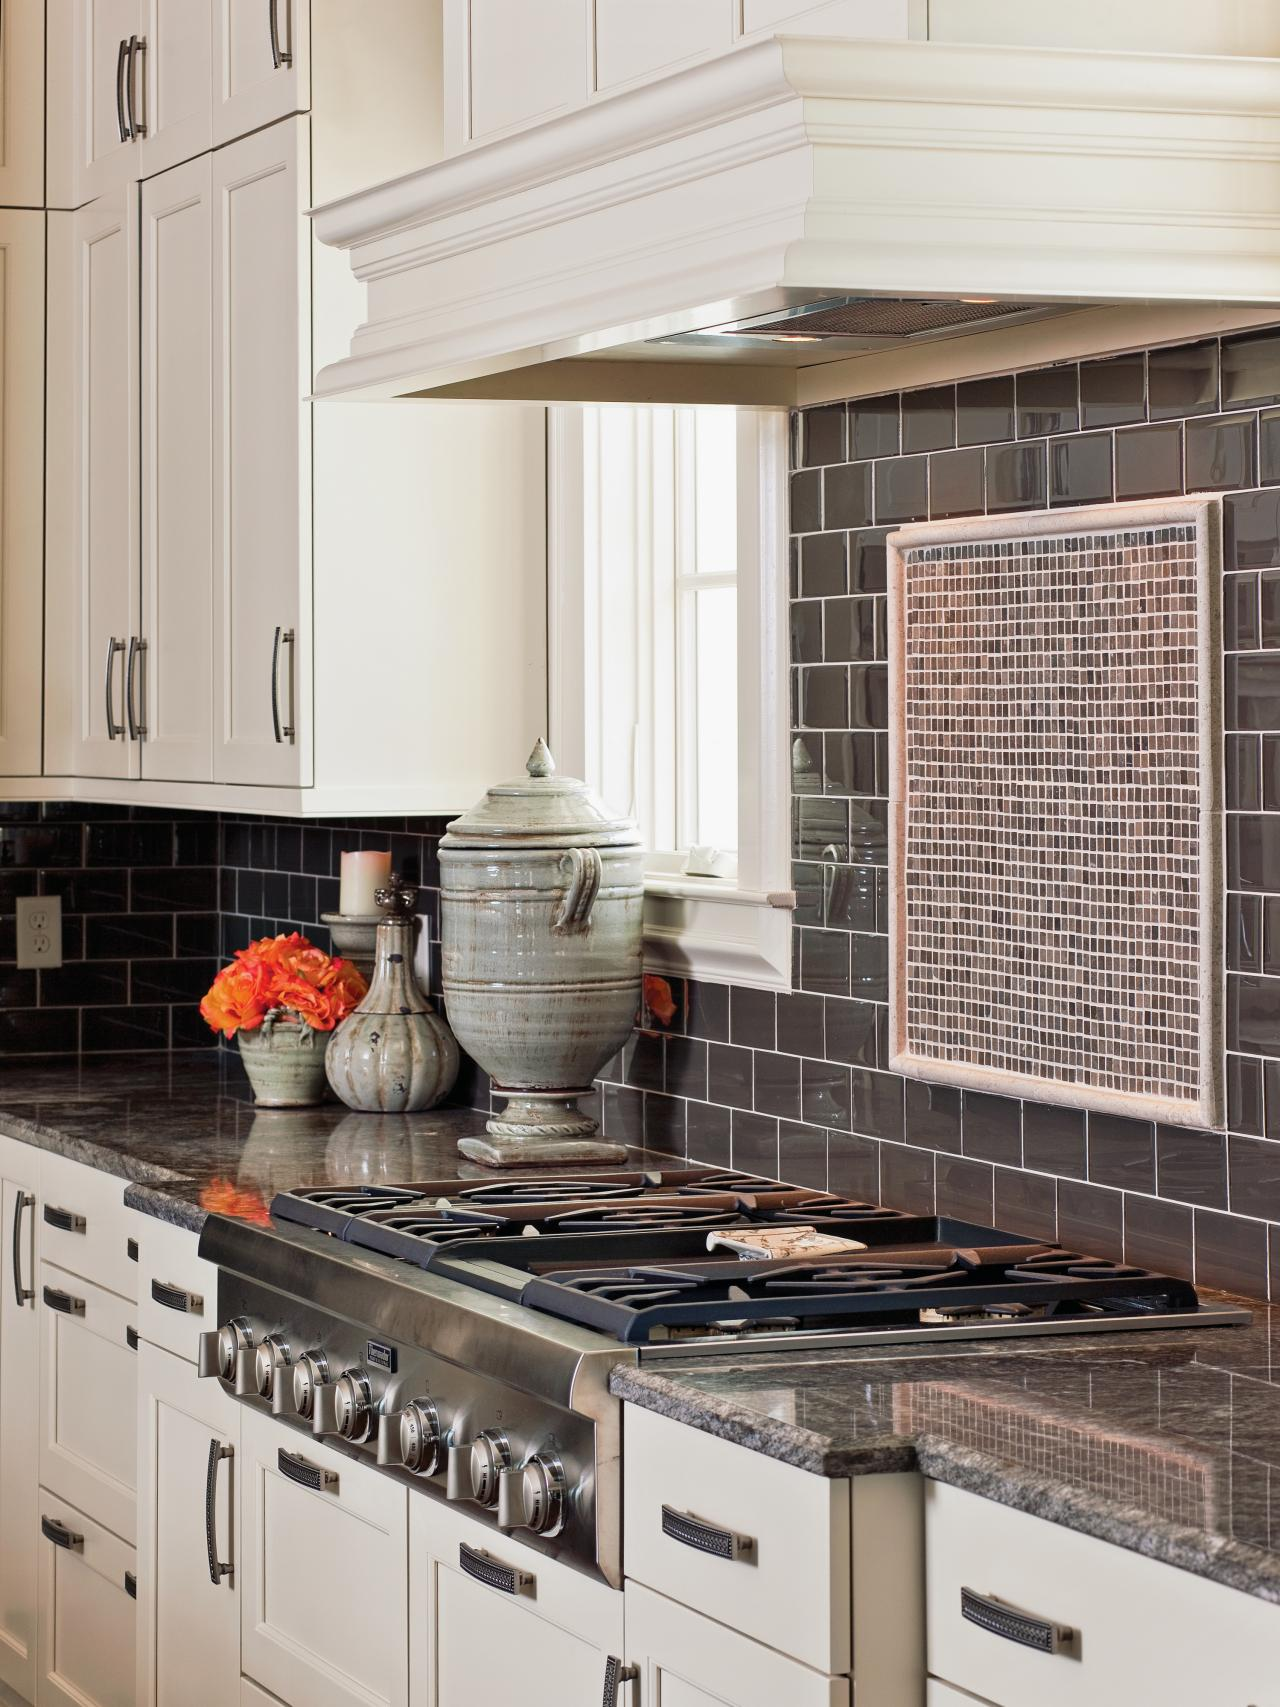 Backsplash Kitchen Subway Tile Subway Tile Backsplashes Pictures Ideas & Tips From Hgtv  Hgtv